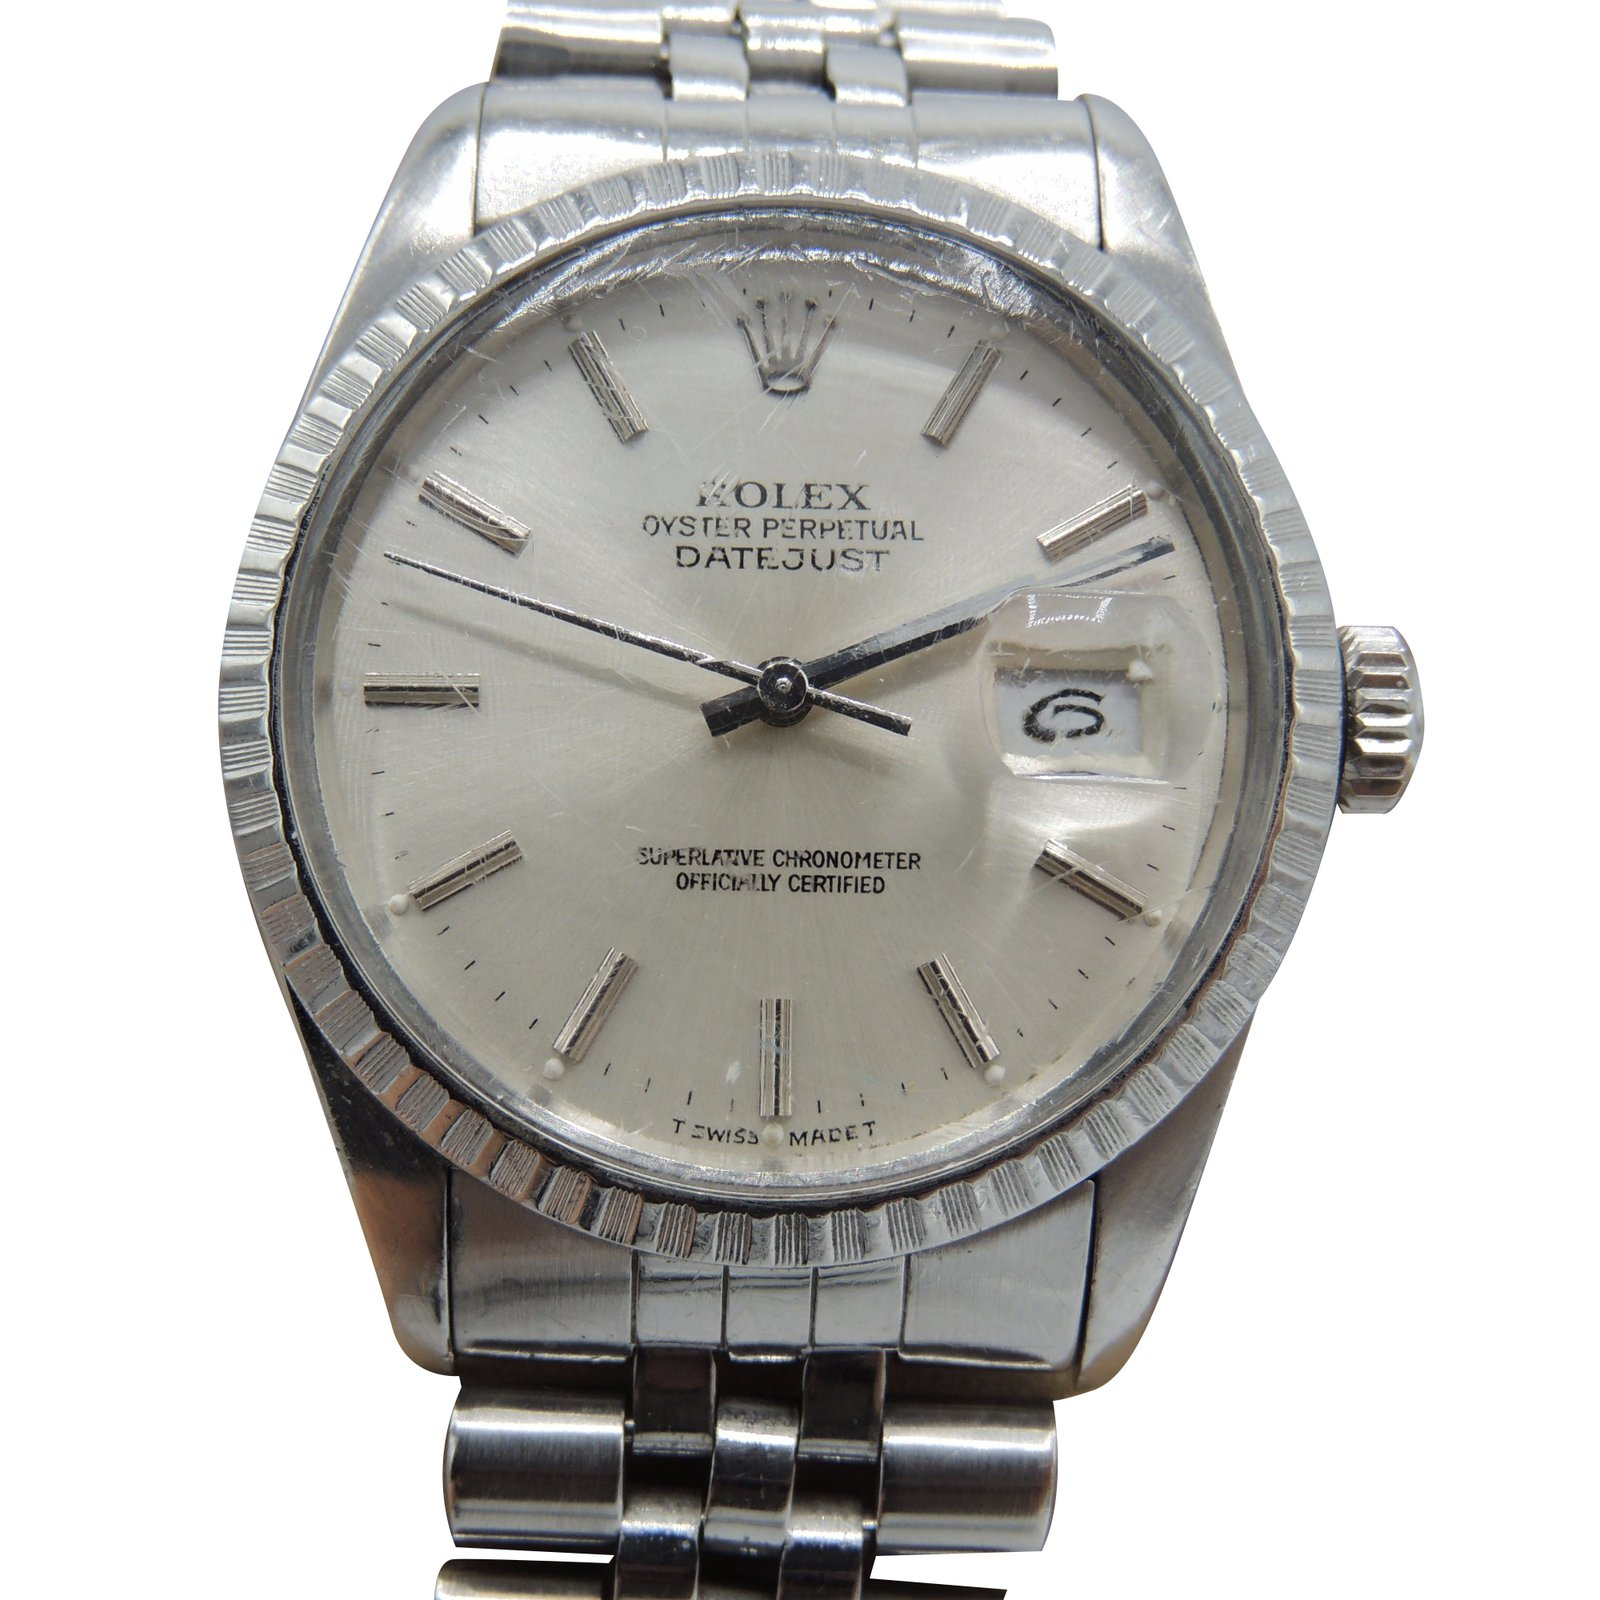 watch datejust automatic perpetual ladies watches oyster of mother pearl dial rolex